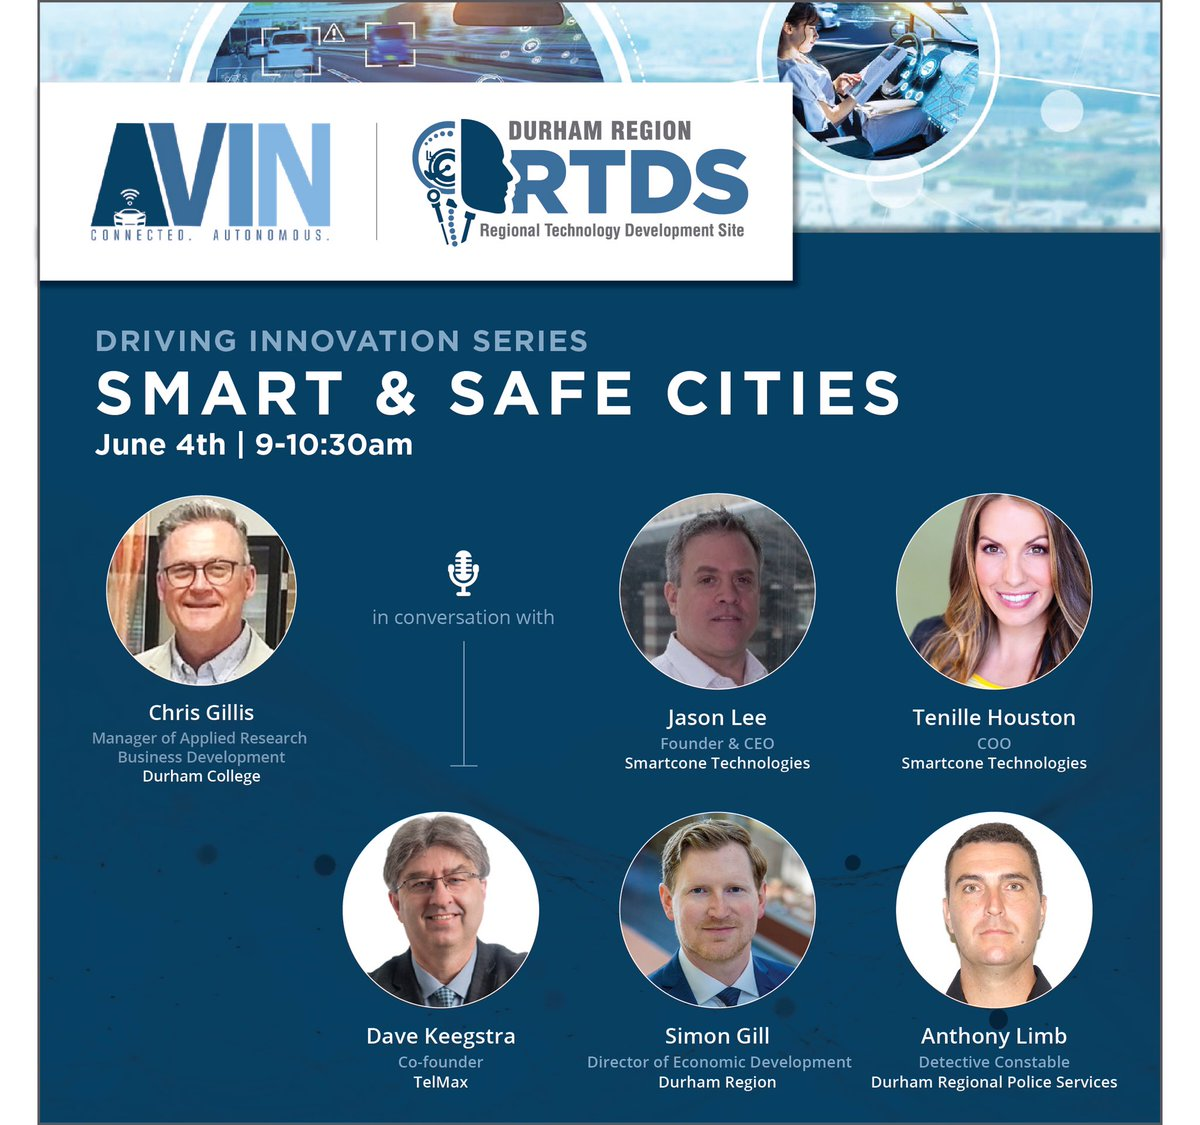 "Tomorrow is Durham RTDS' Driving Innovation Series ""Smart & Safe Cities"". You don't want to miss this discussion about how #technology in the EV & C/AV sectors can contribute to the #future of our cities! Register for free https://durhamrtds.ca/smartandsafecities/ … #AutonomousVehicles #smartcitiespic.twitter.com/7OV4Hc2Yhz"